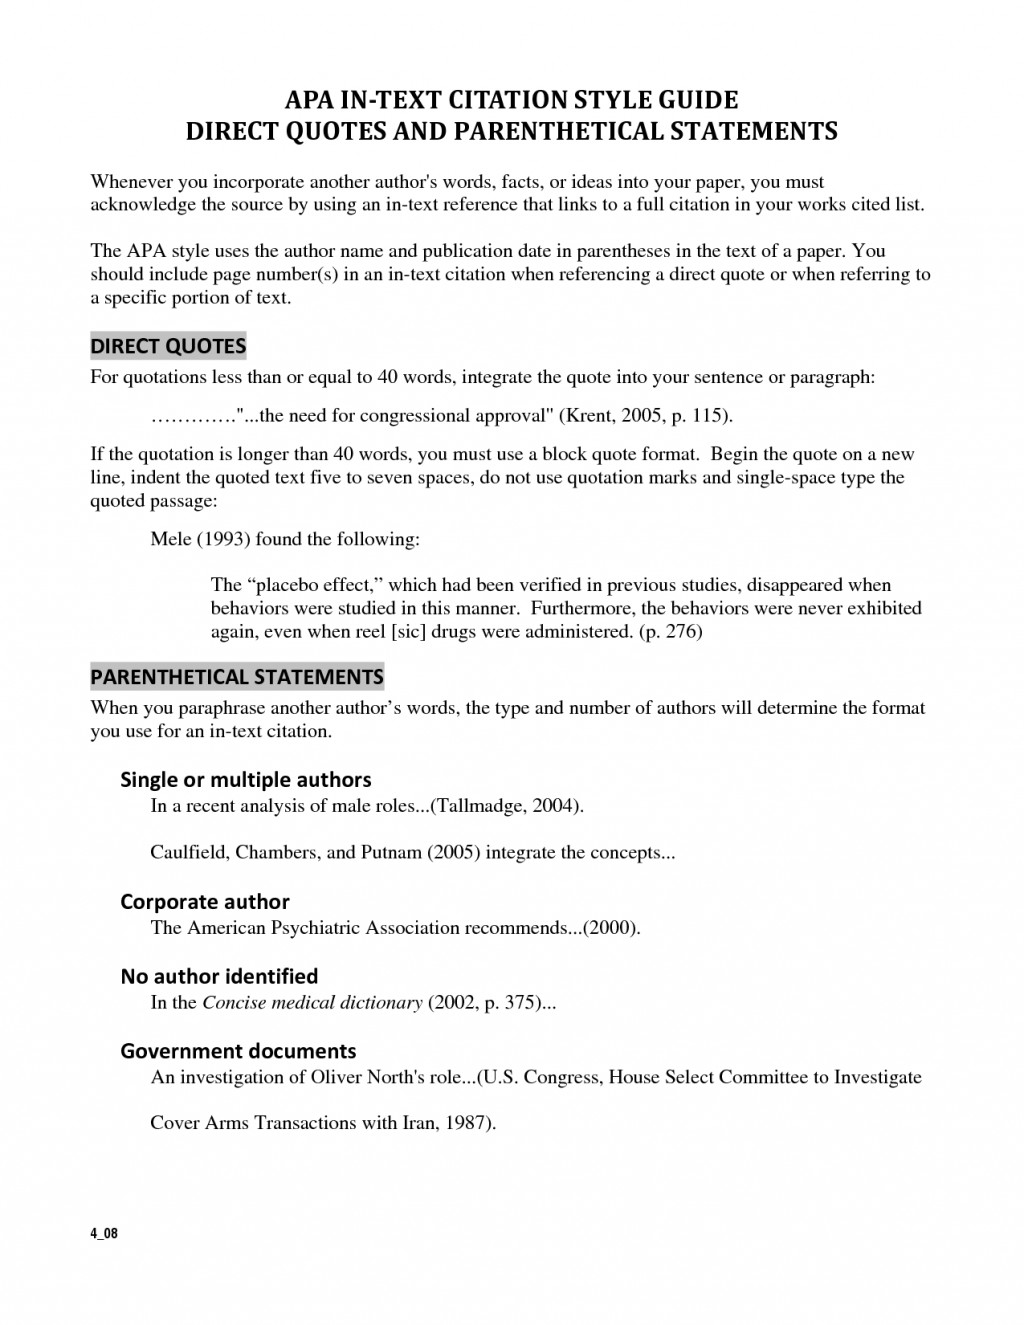 006 Cited Quotes How To Use Quote In An Essay Impressive A Movie Line Do Mla Format Large Large